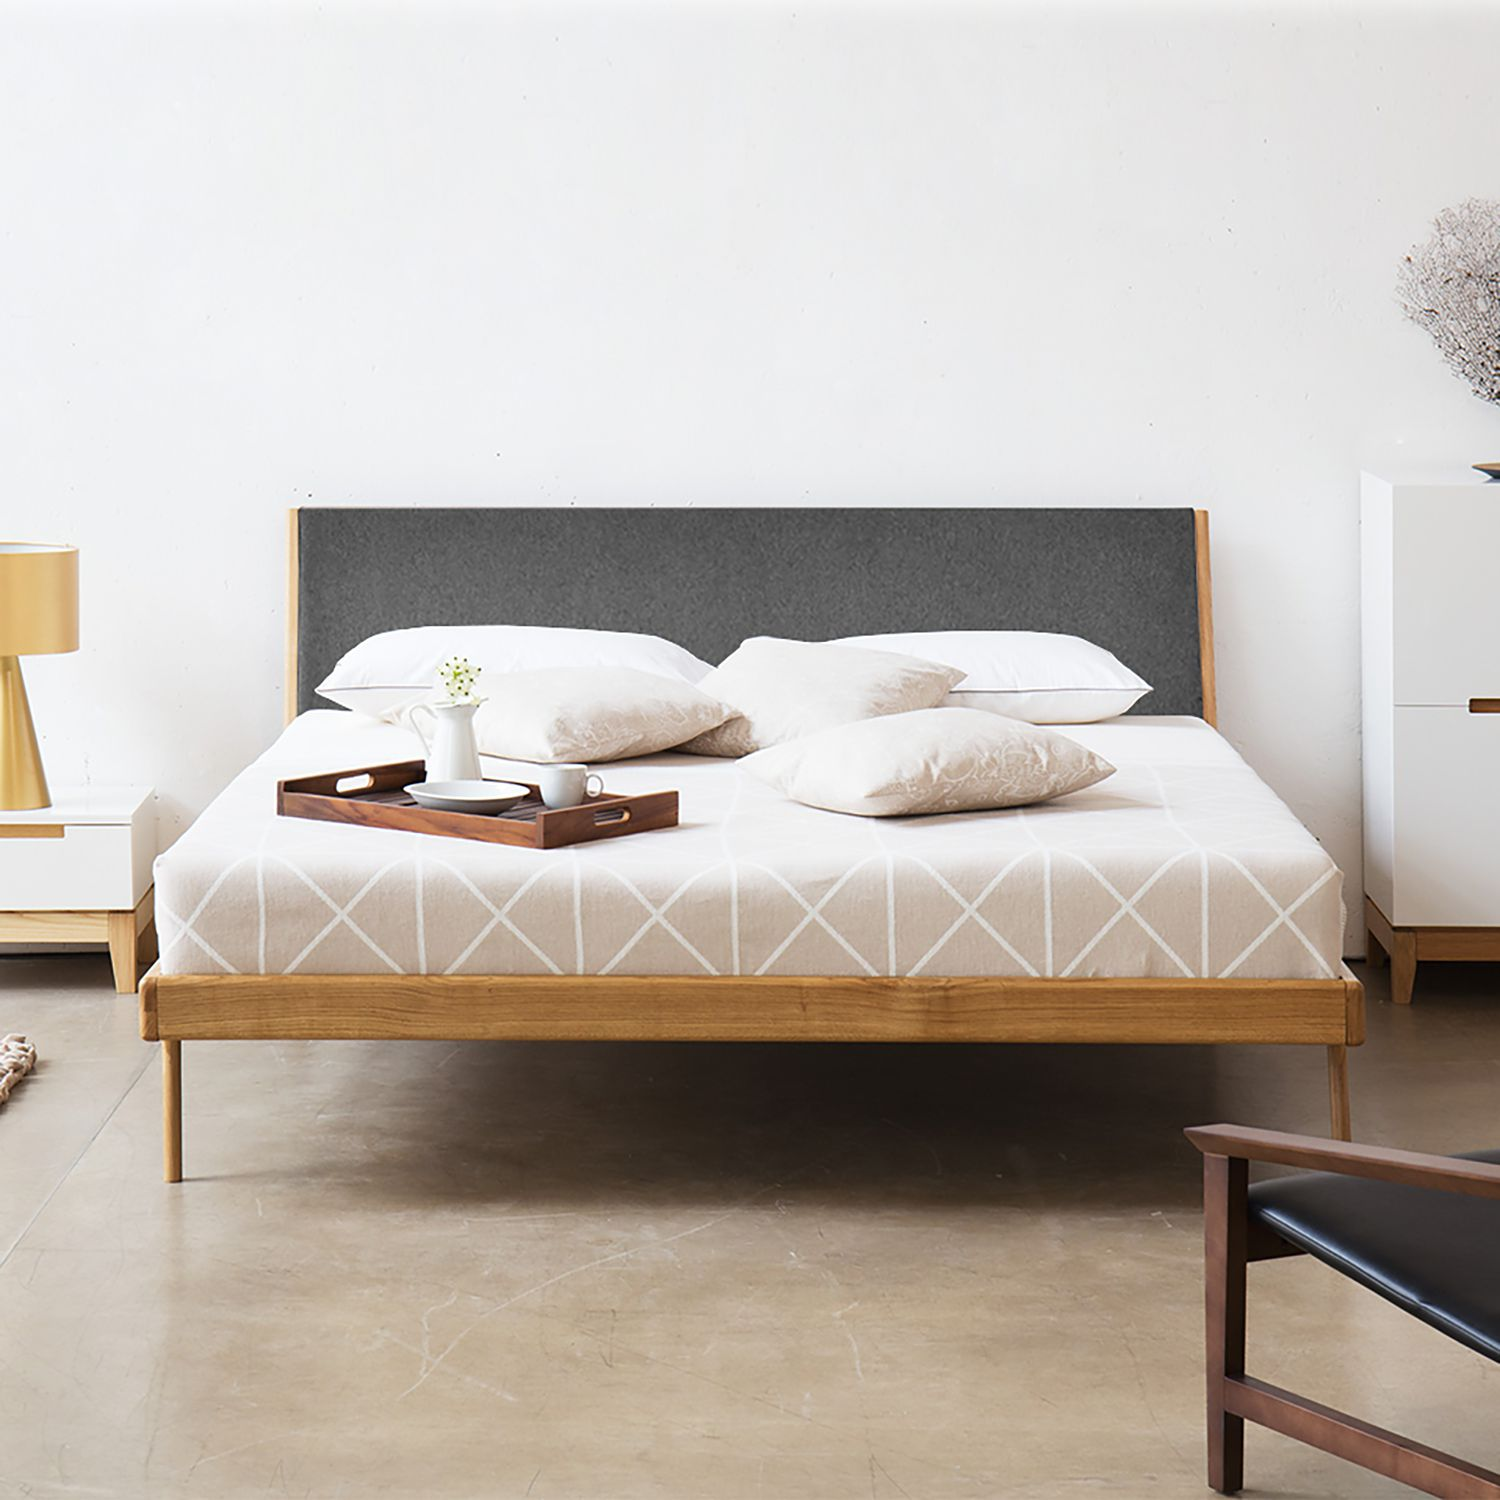 Bett Fawn I - Fashion For Home